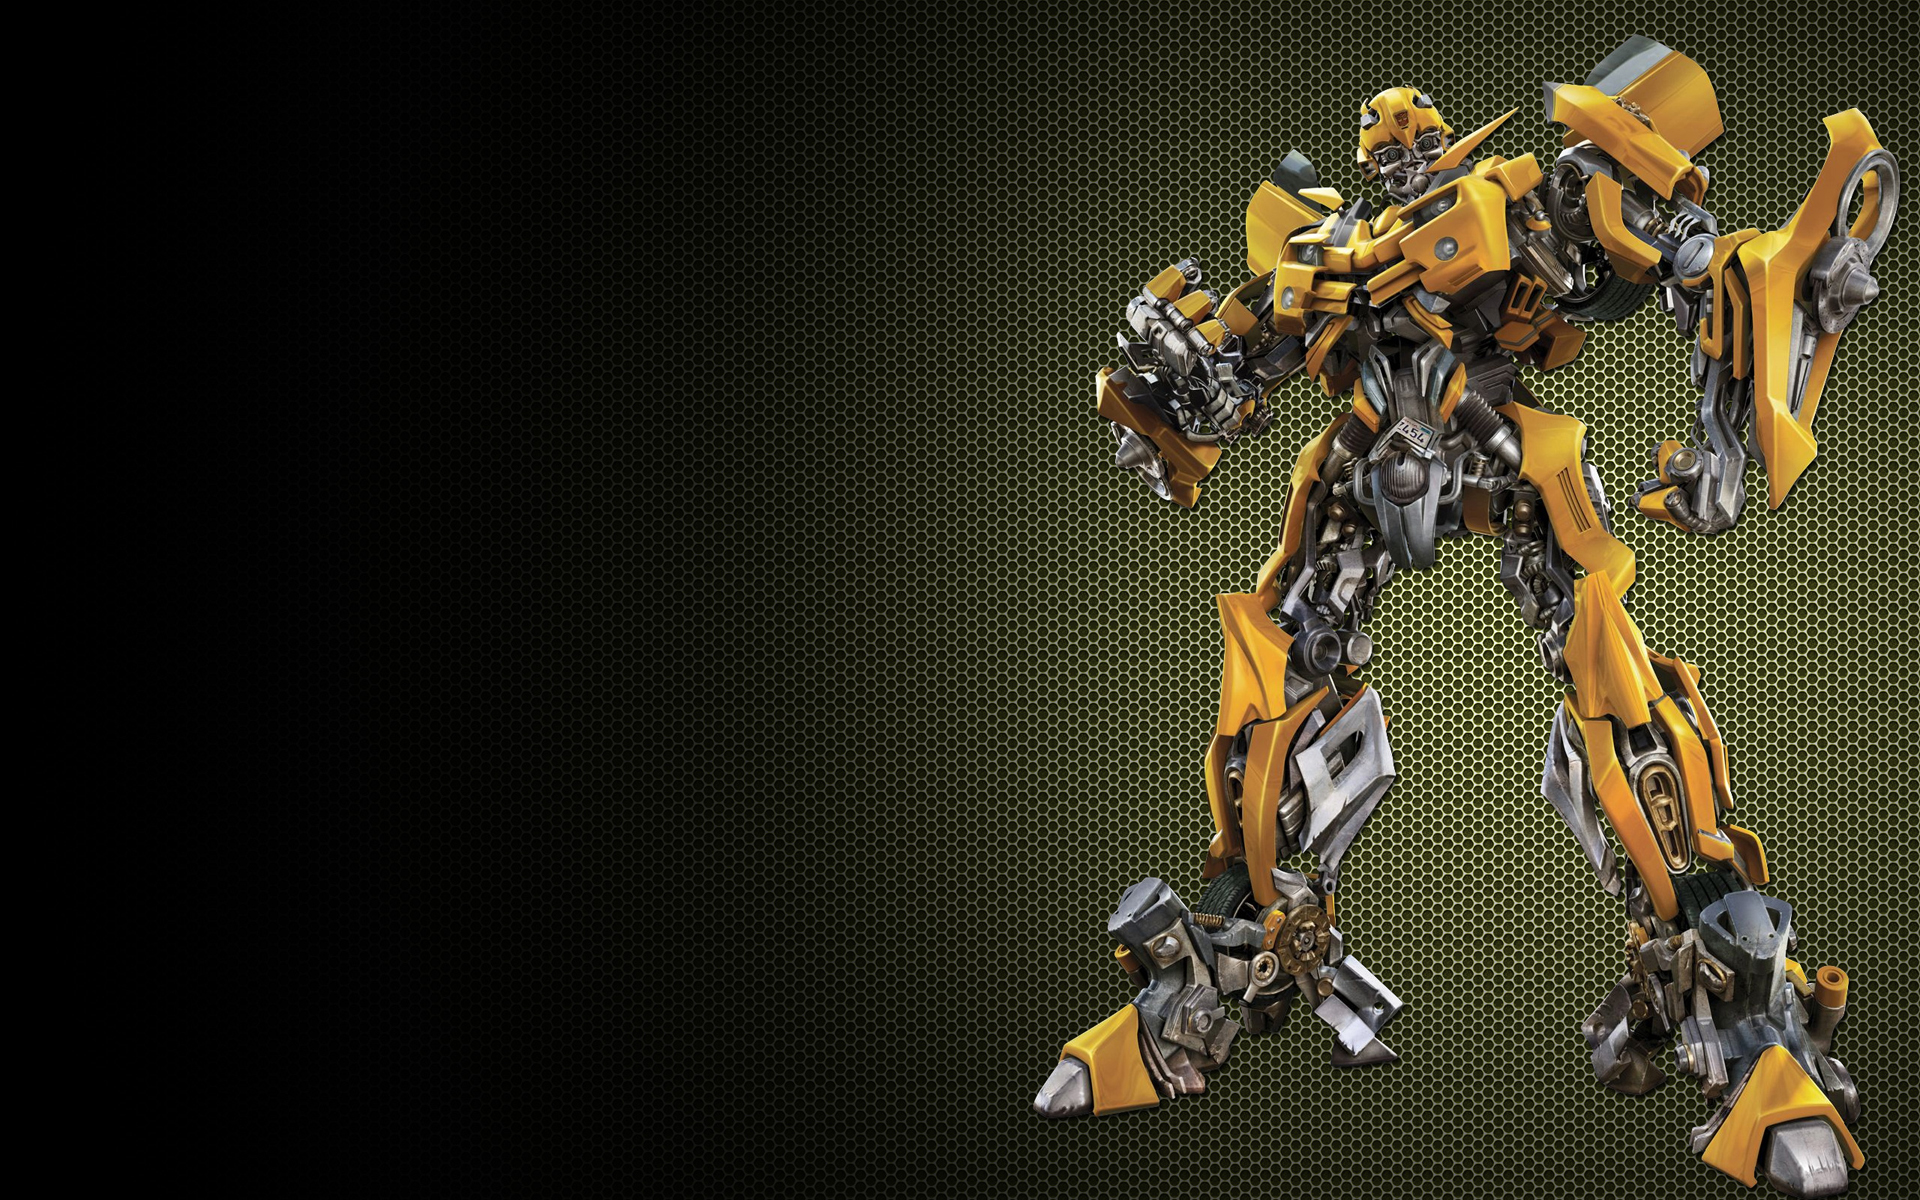 HD Wallpapers Movies Robots Bumblebee Characters Transformers 1920x1200